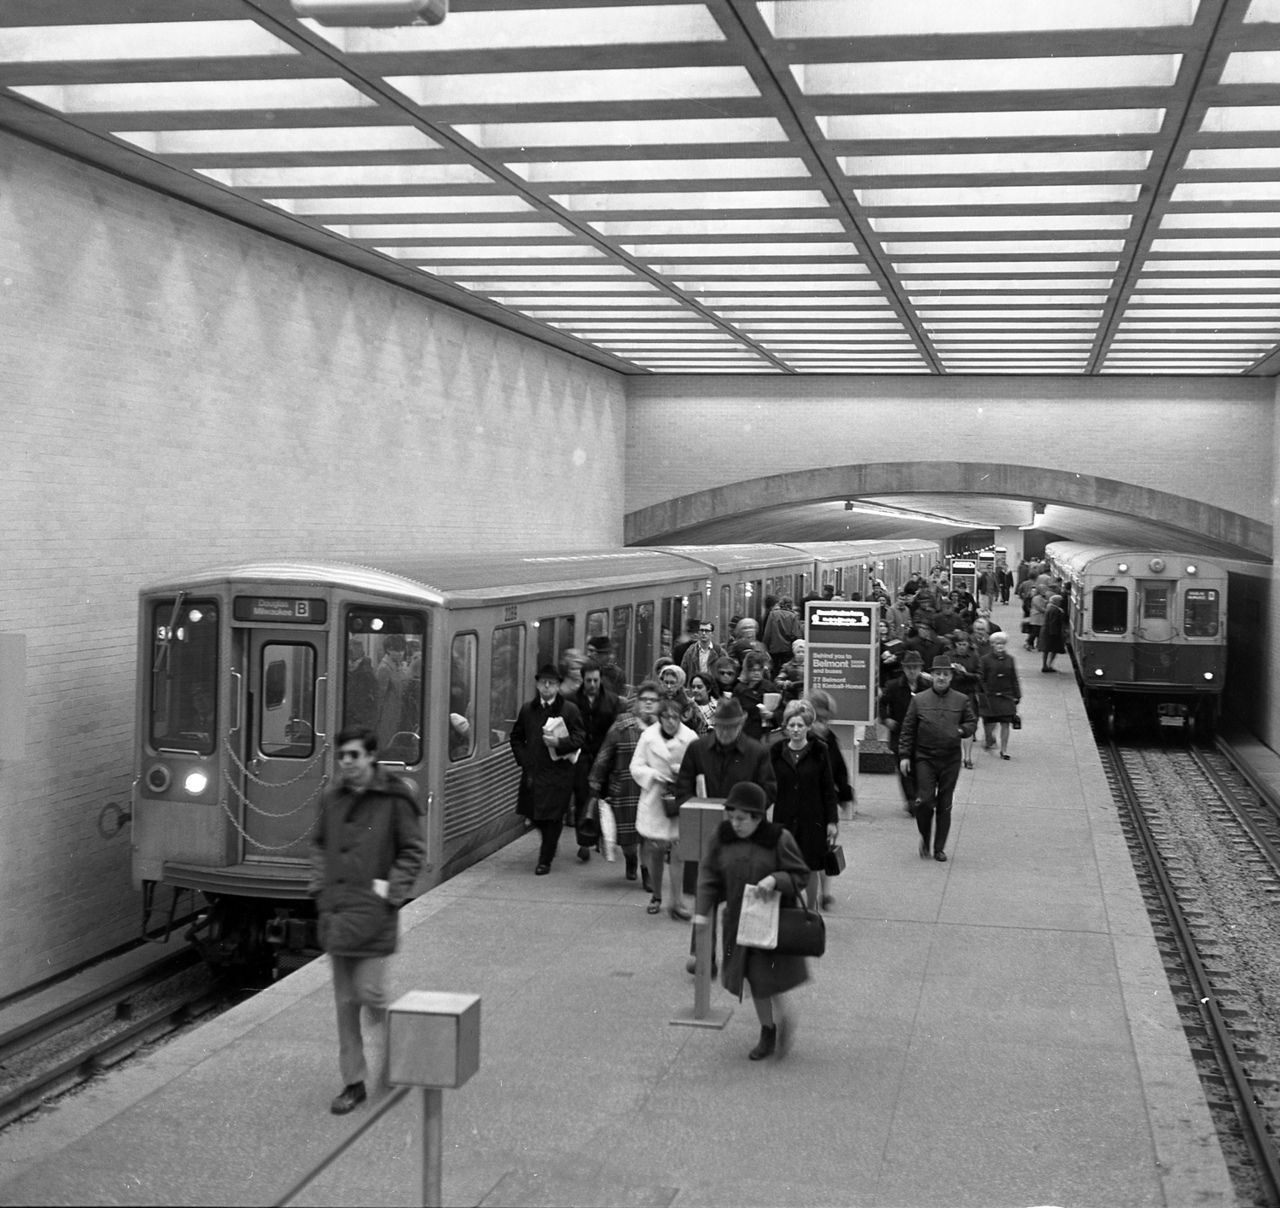 Old Chicago CTA Train Stations